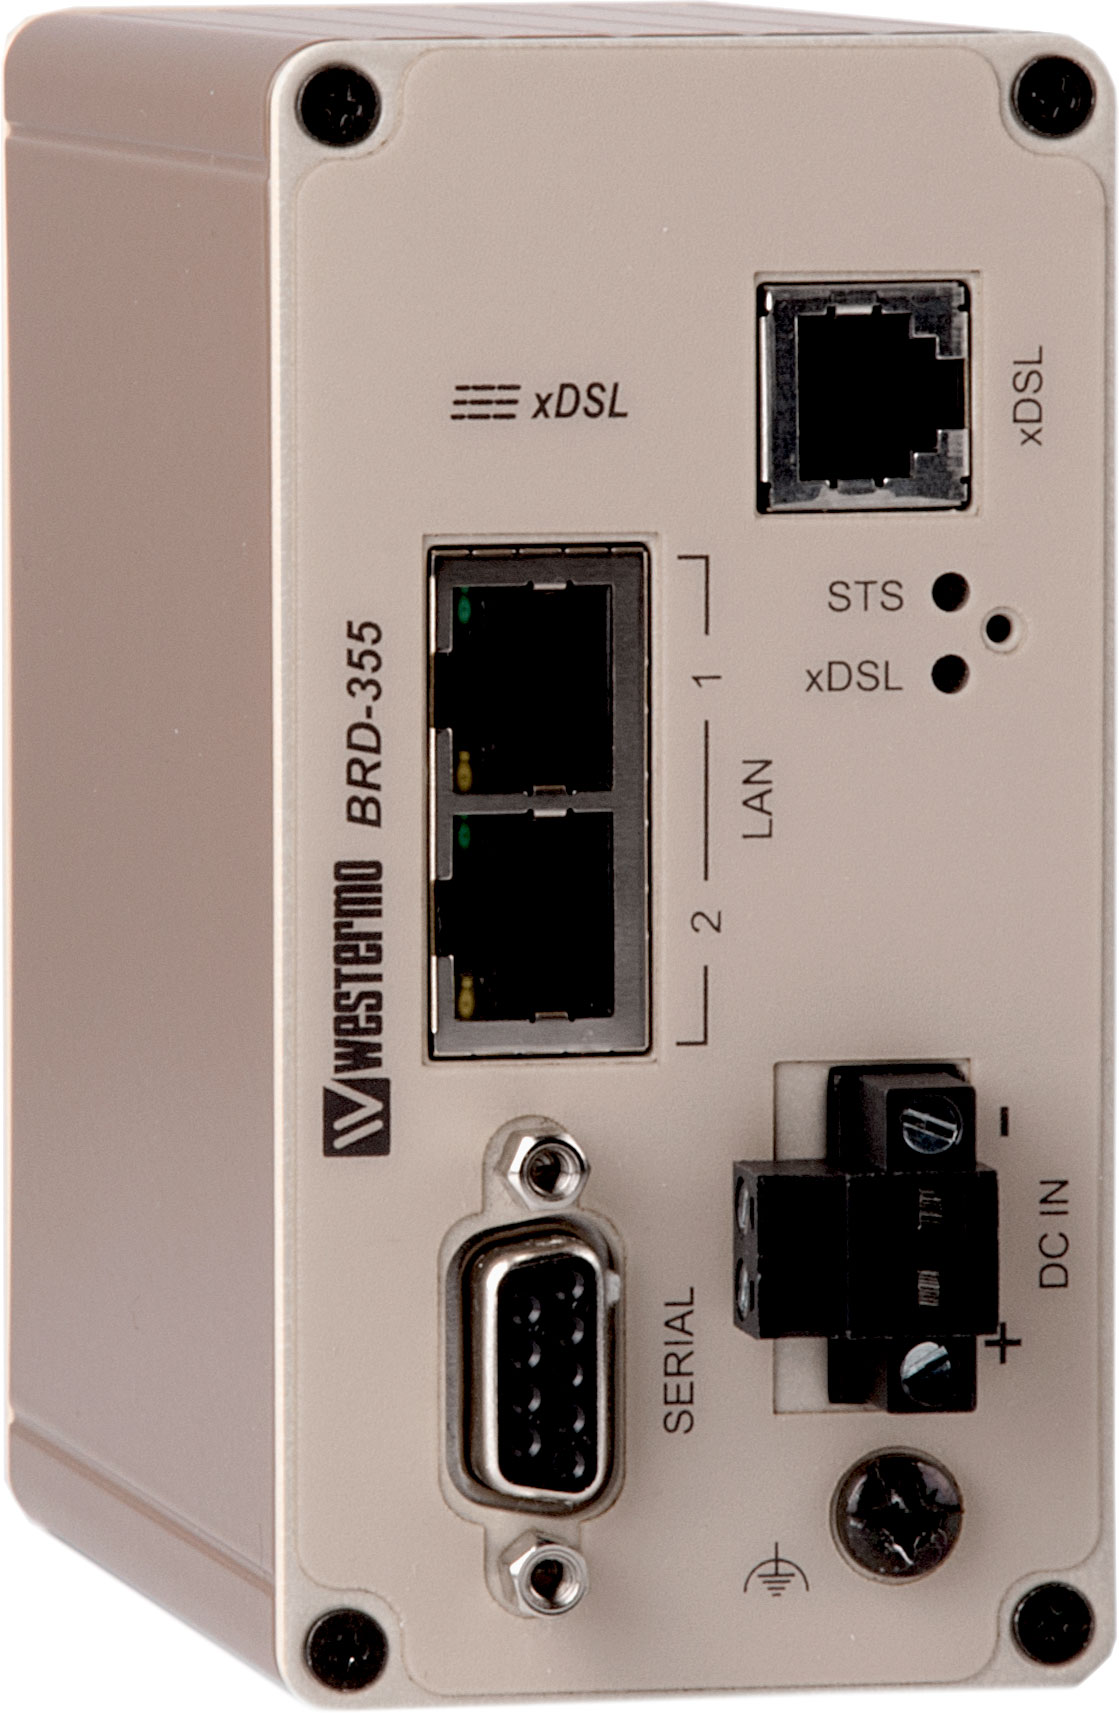 Support for BRD-355 Industrial ADSL/VDSL Router ᐈ Westermo